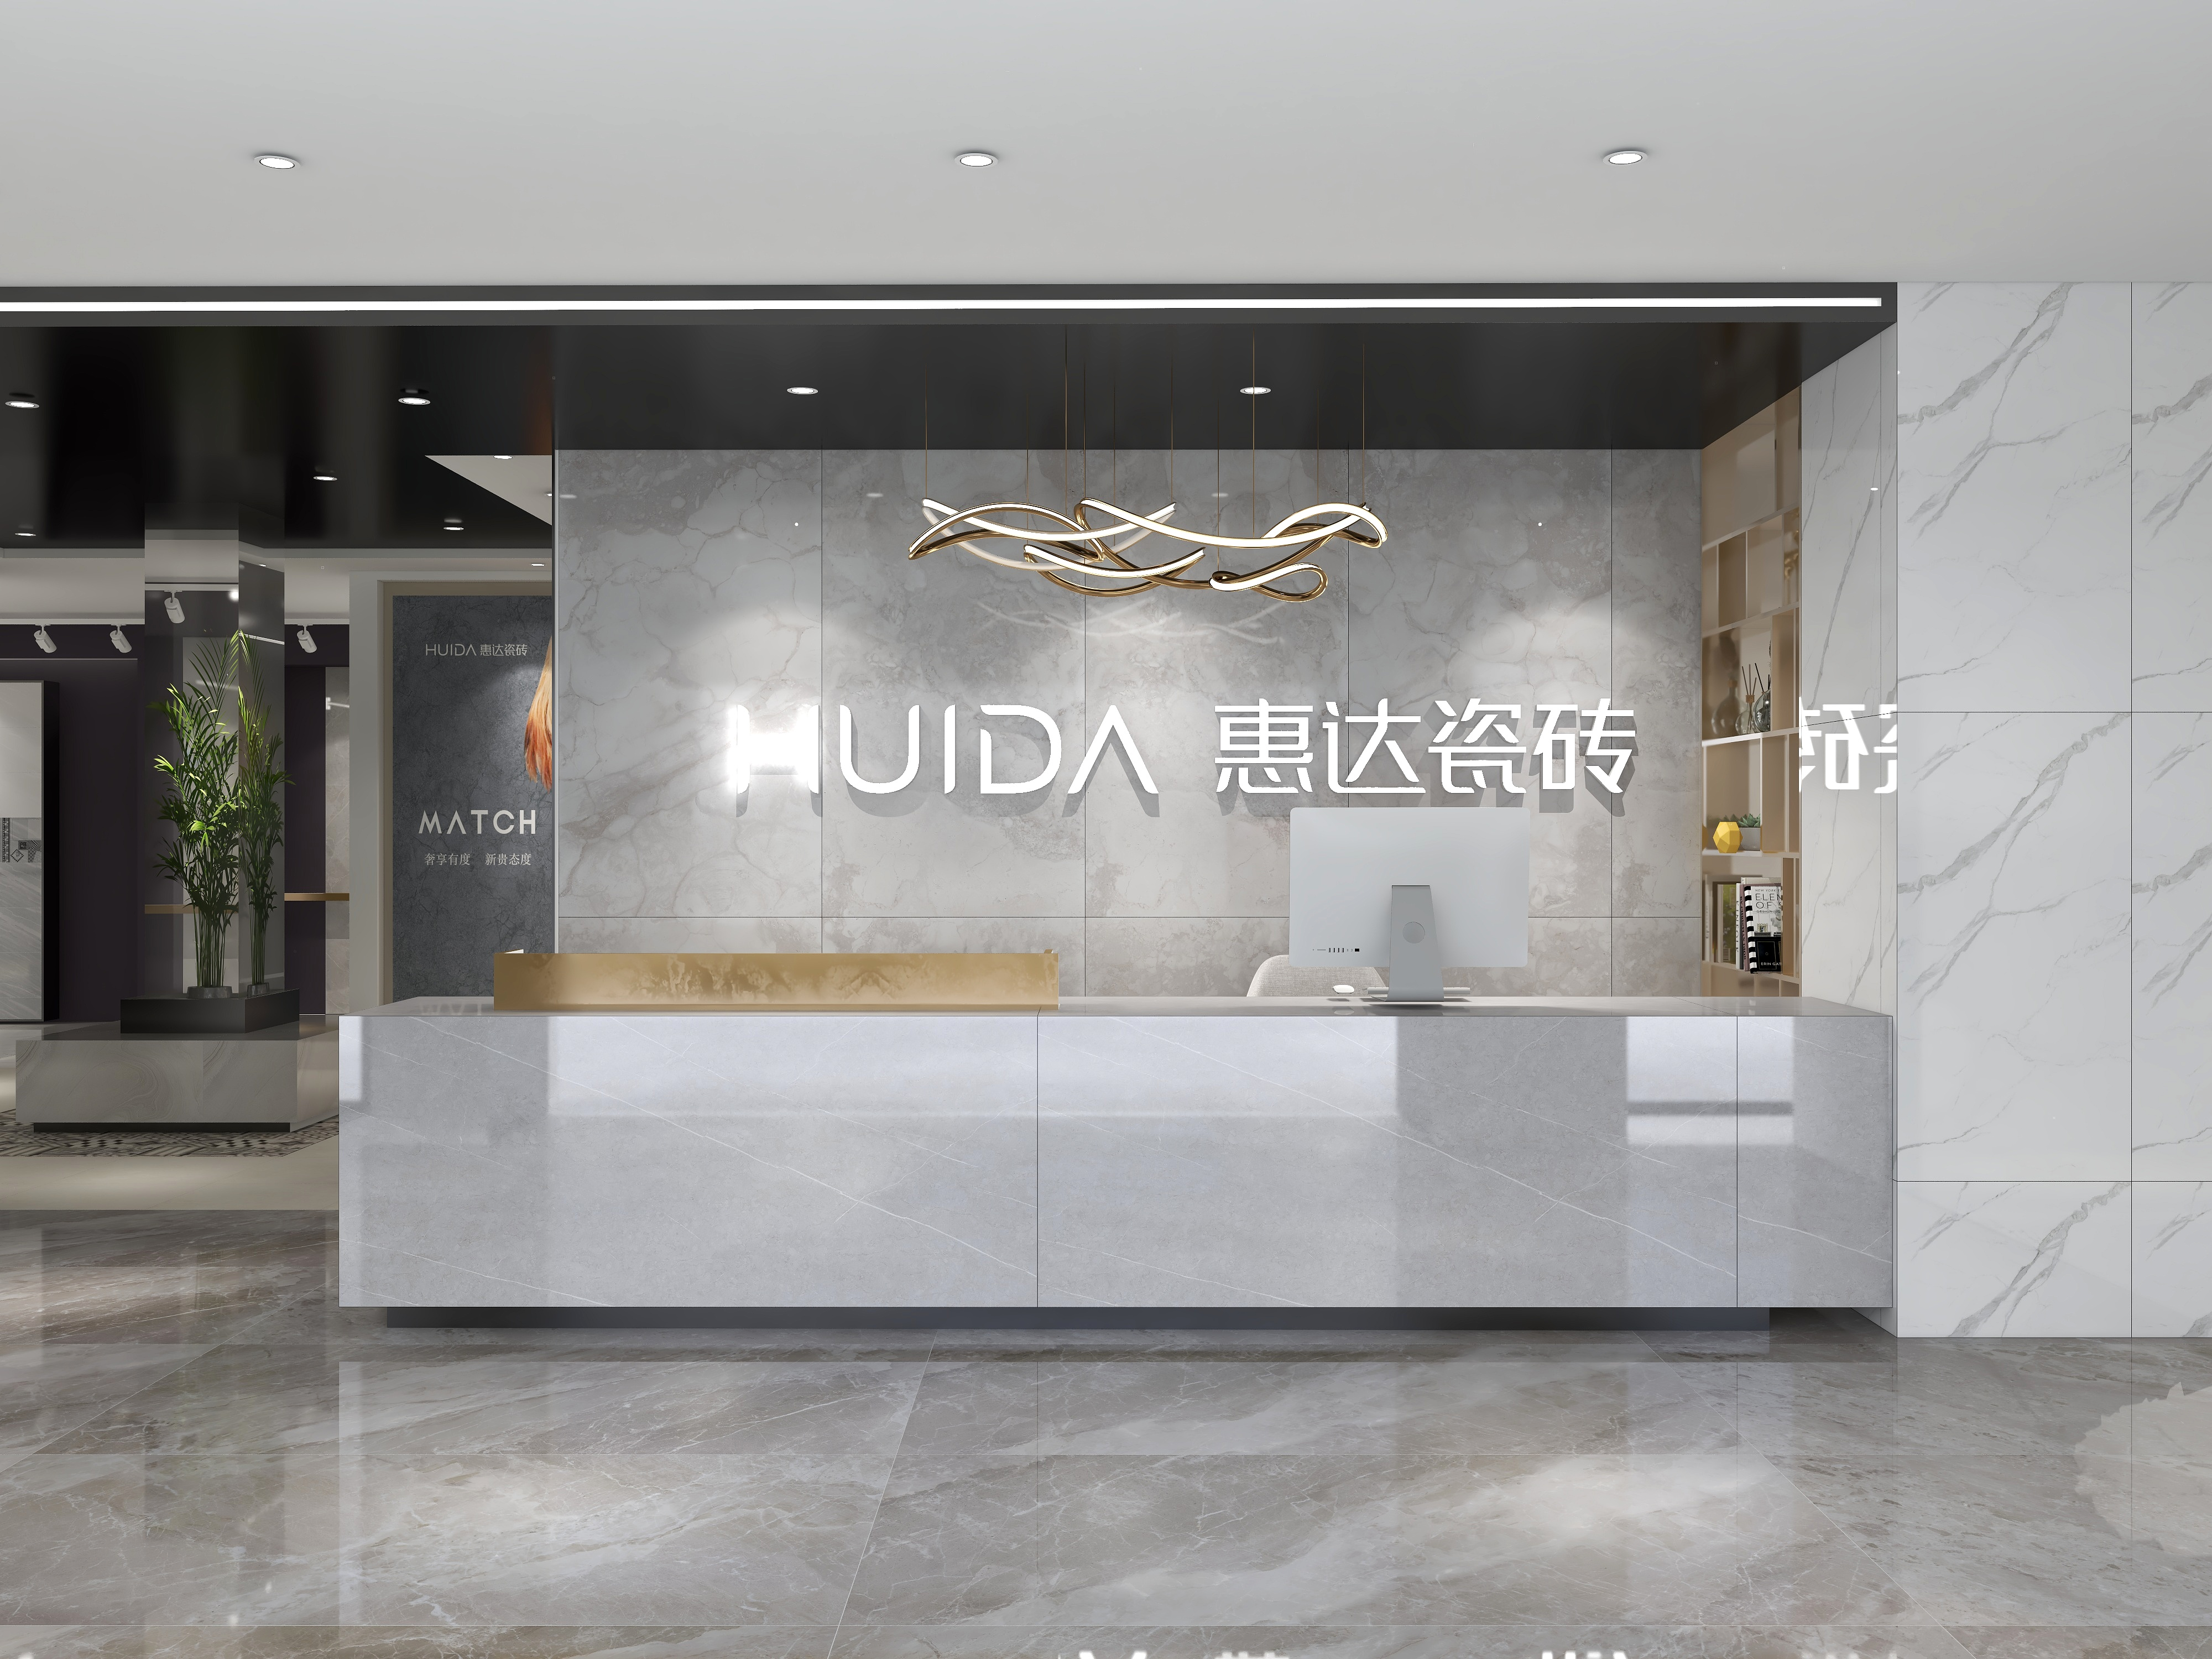 HUIDA TILES VR MUCK UP SHOWROOM